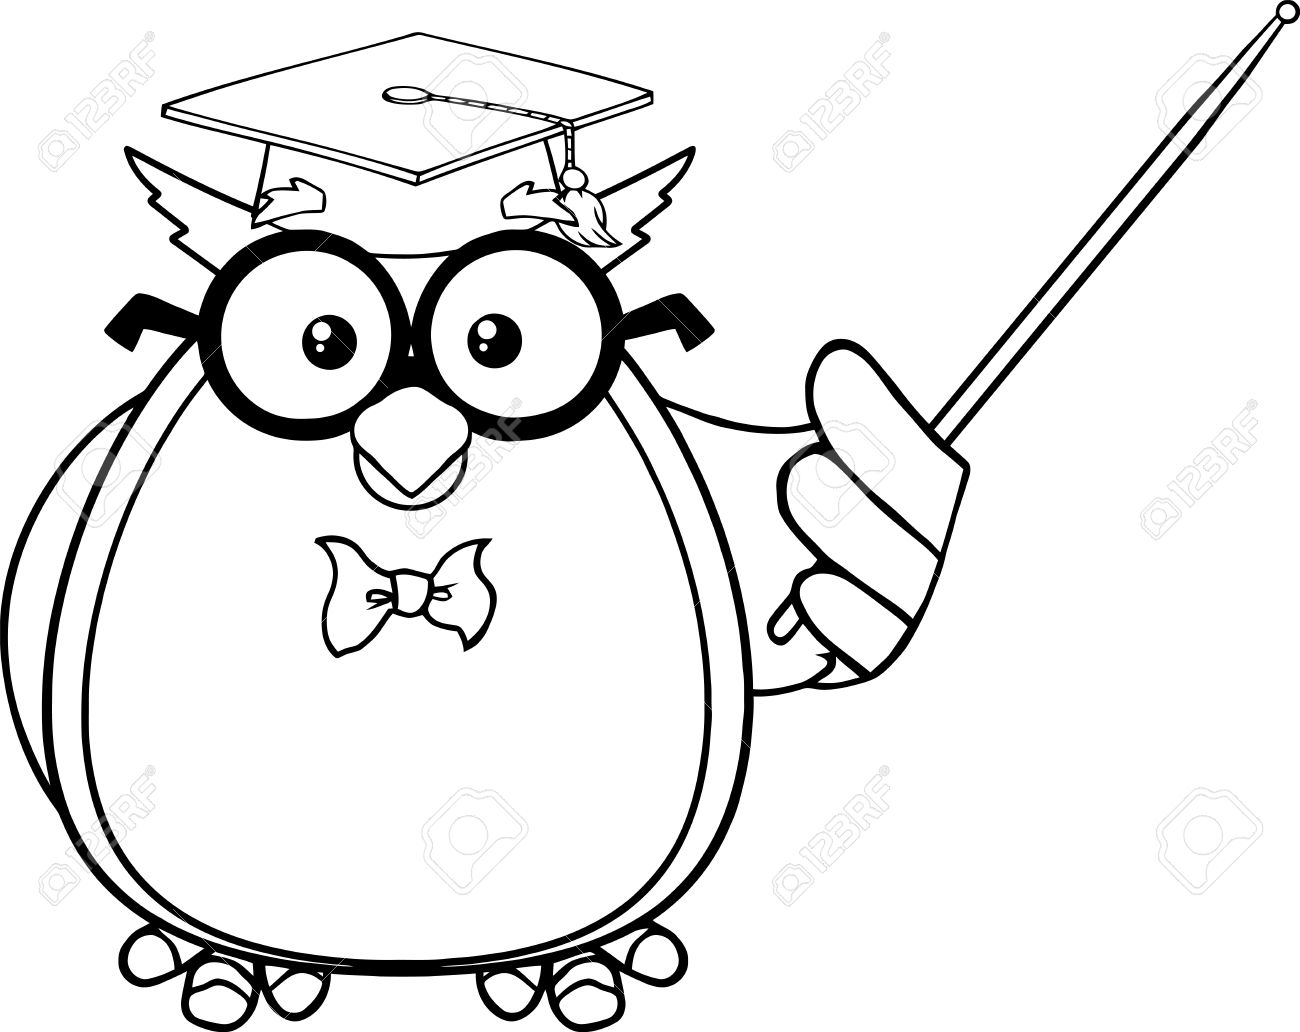 1300x1032 Black And White Wise Owl Teacher Cartoon Mascot Character With